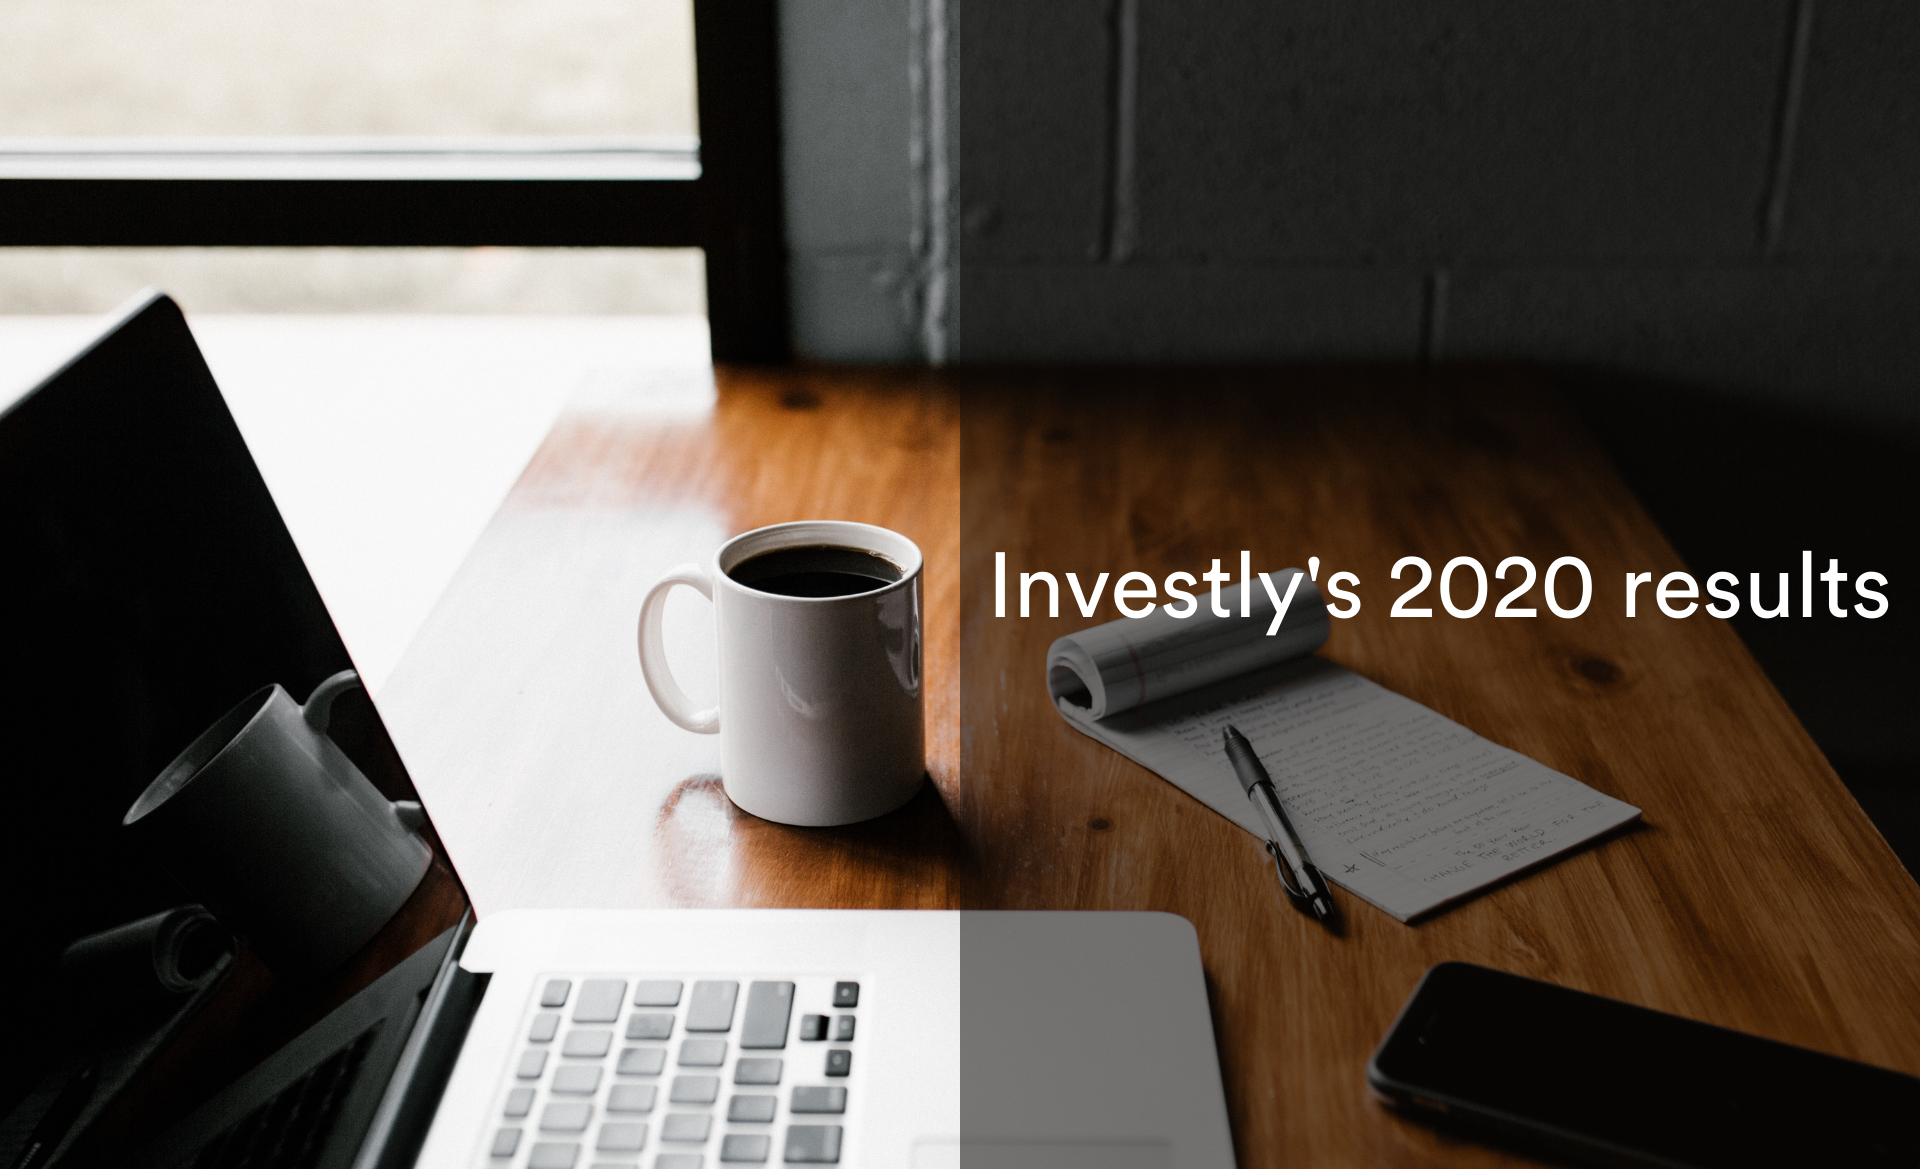 Investly's 2020 results